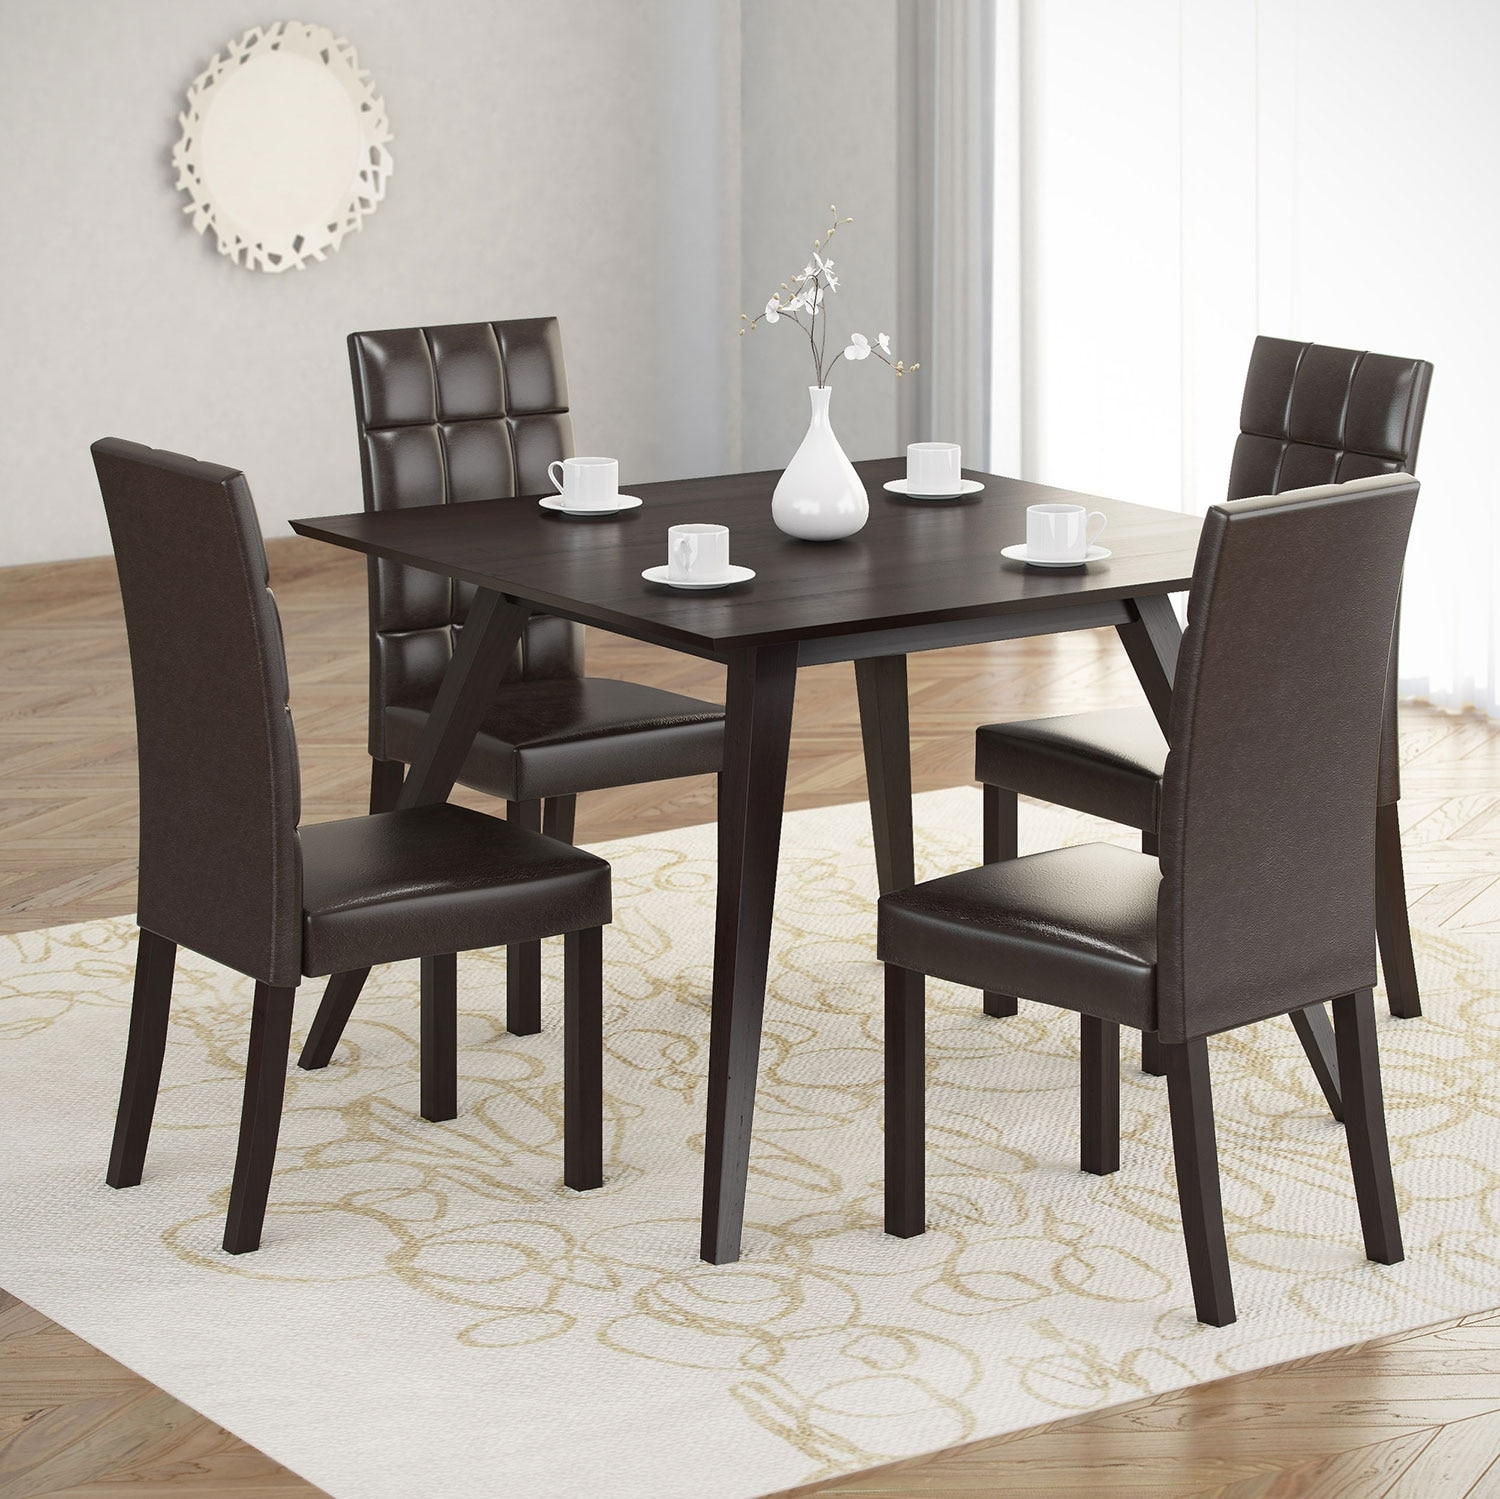 Dining Room Furniture - Atwood 5-Piece Dining Package with Faux Leather Dark Brown Chairs